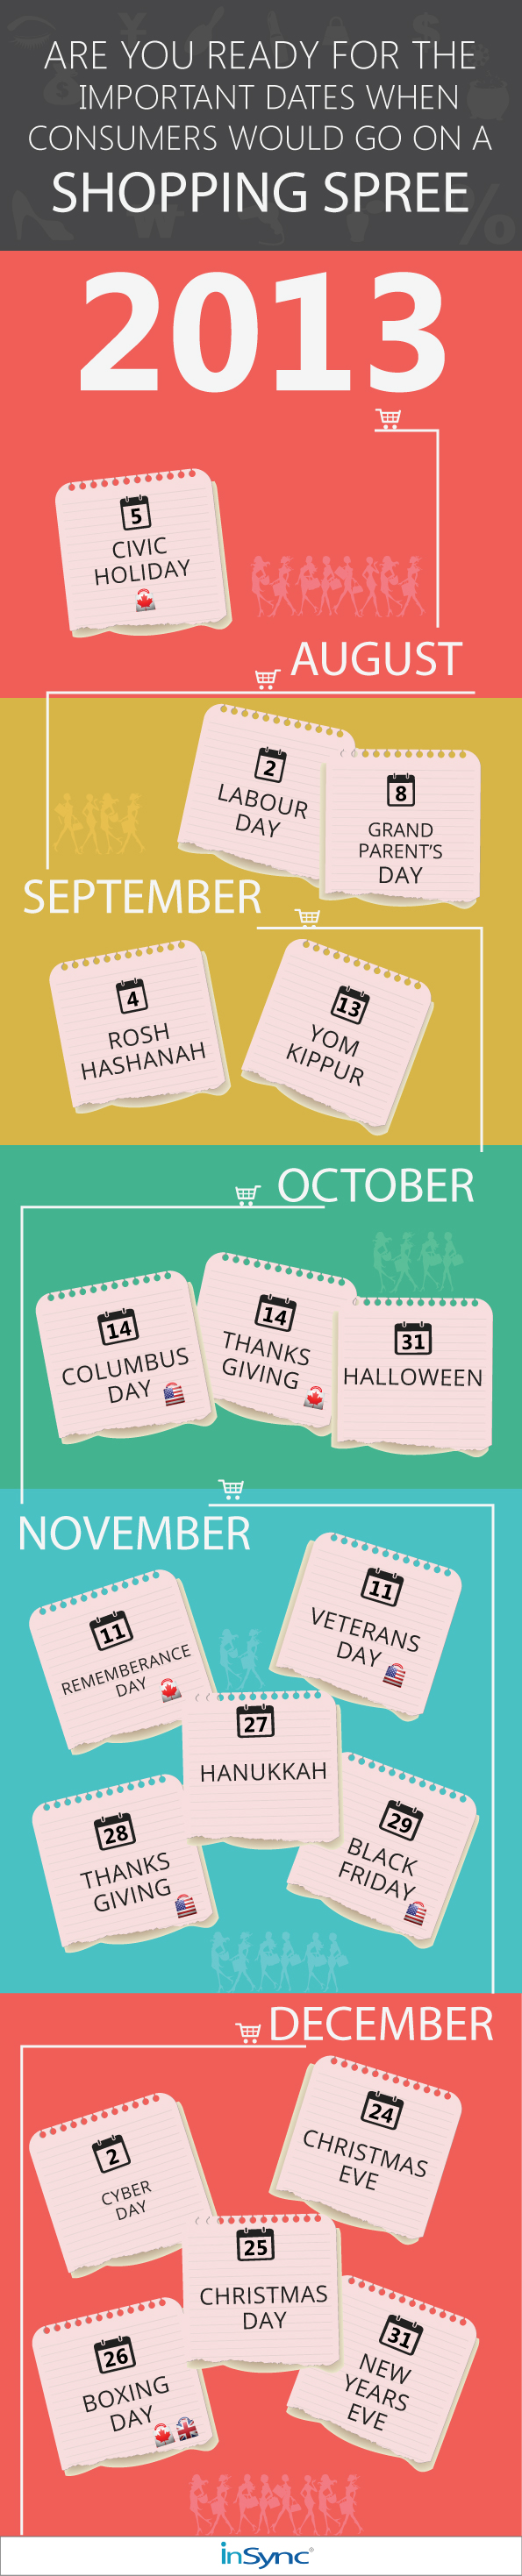 Important shopping dates of 2013